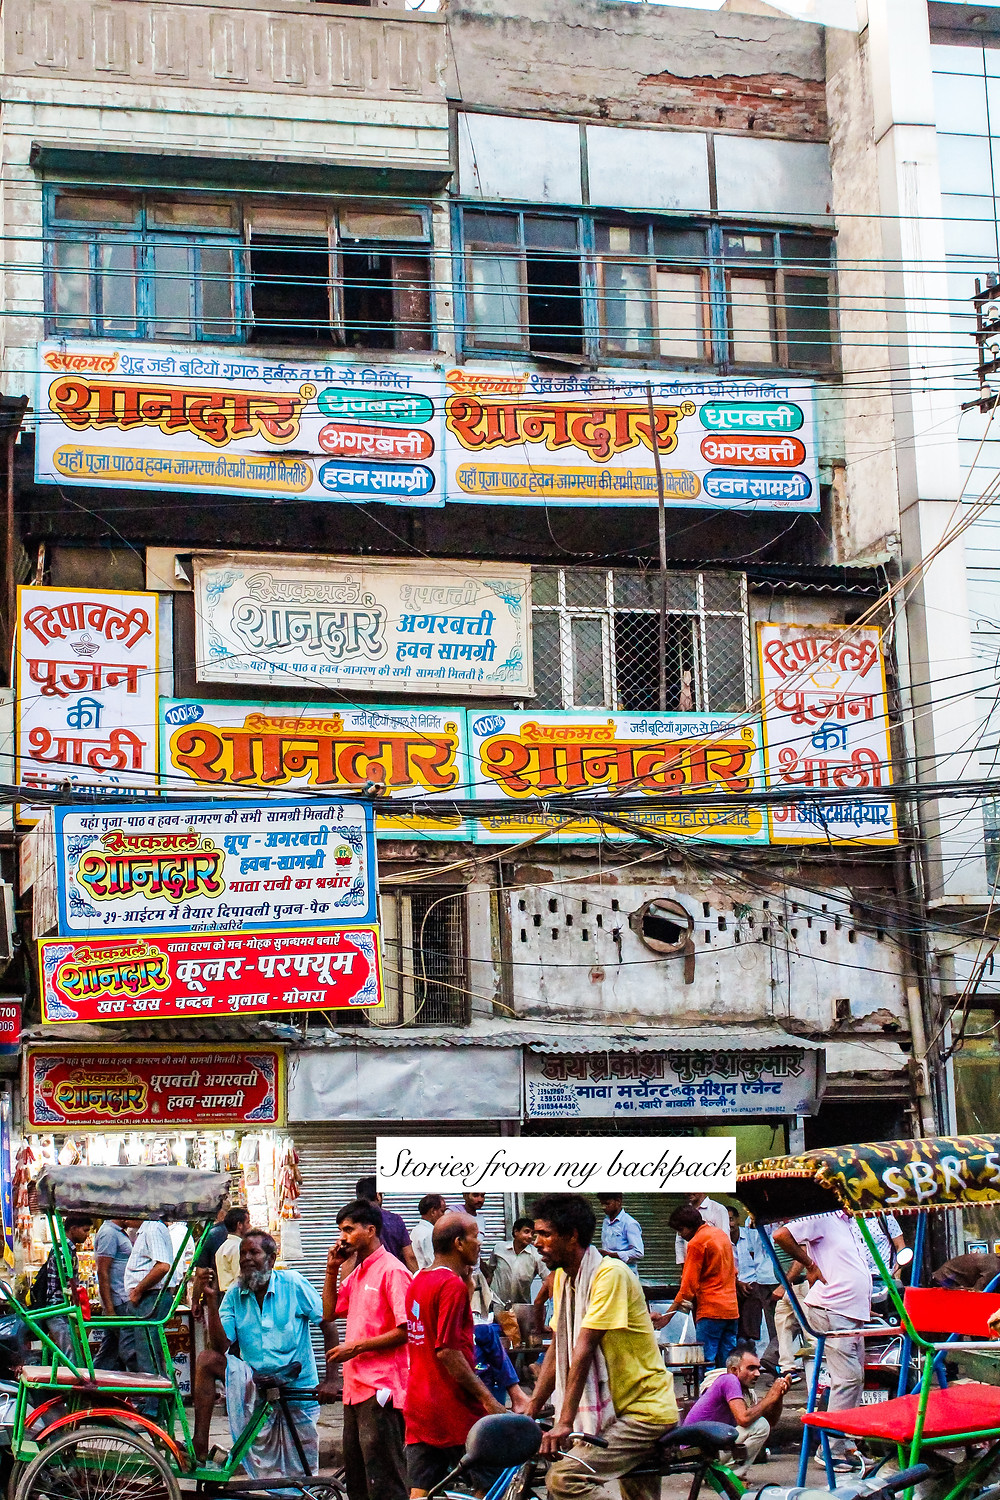 things to do in Delhi, New Delhi sightseeing, must see places in New Delhi, Chandni Chowk, shopping in New Delhi